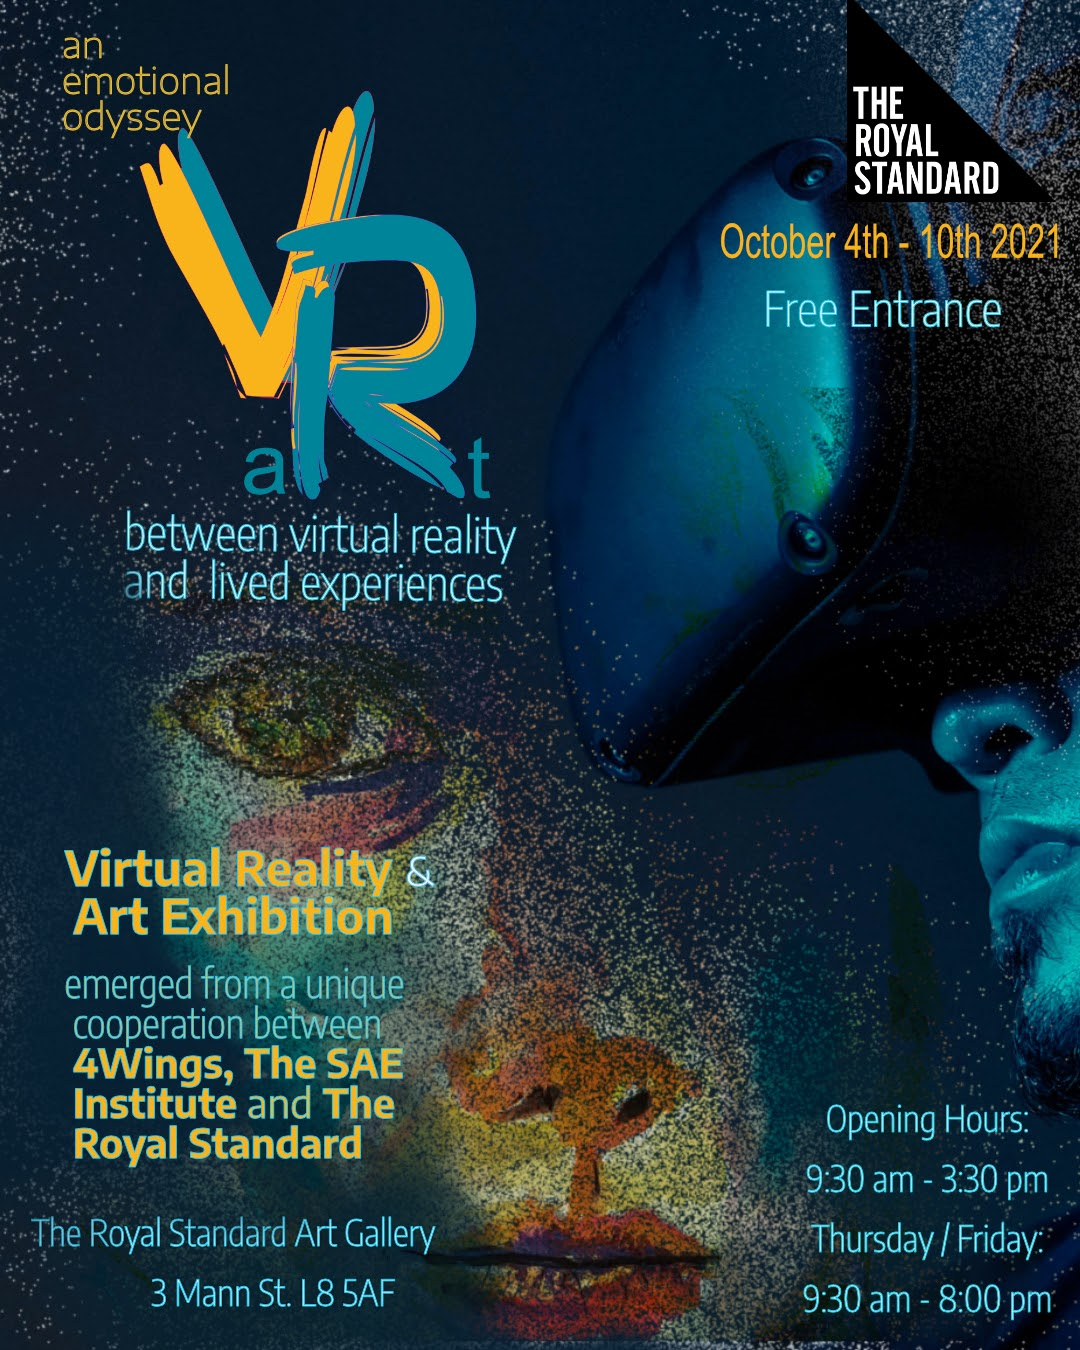 The Royal Standard: VaRt - An Exhibition by 4Wings